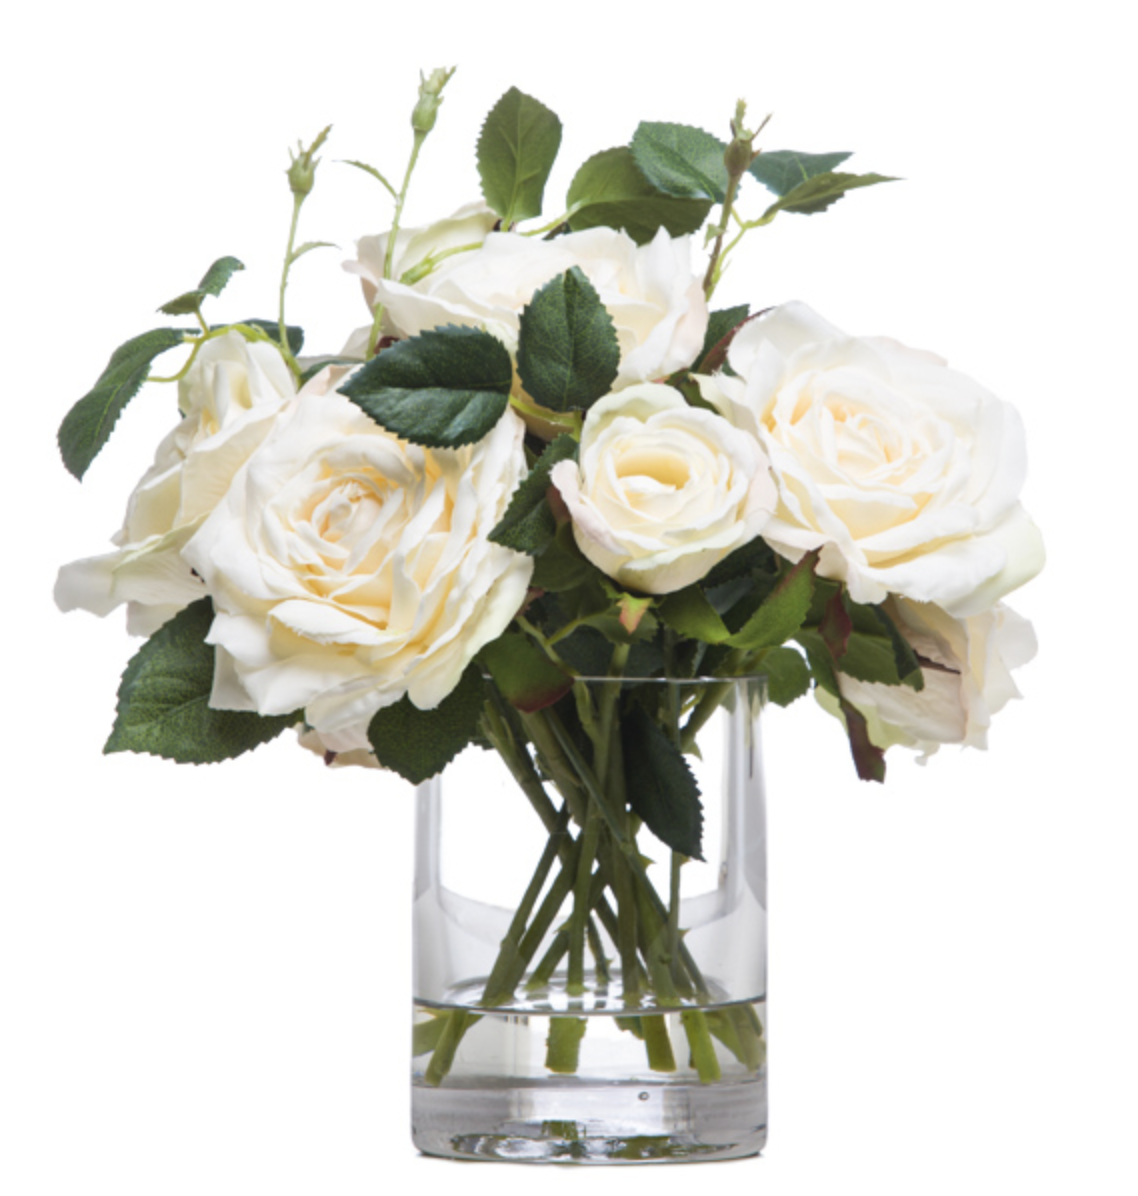 Flowers White Roses In 2020 Fake Flowers Decor Faux Flower Arrangements Faux Flowers